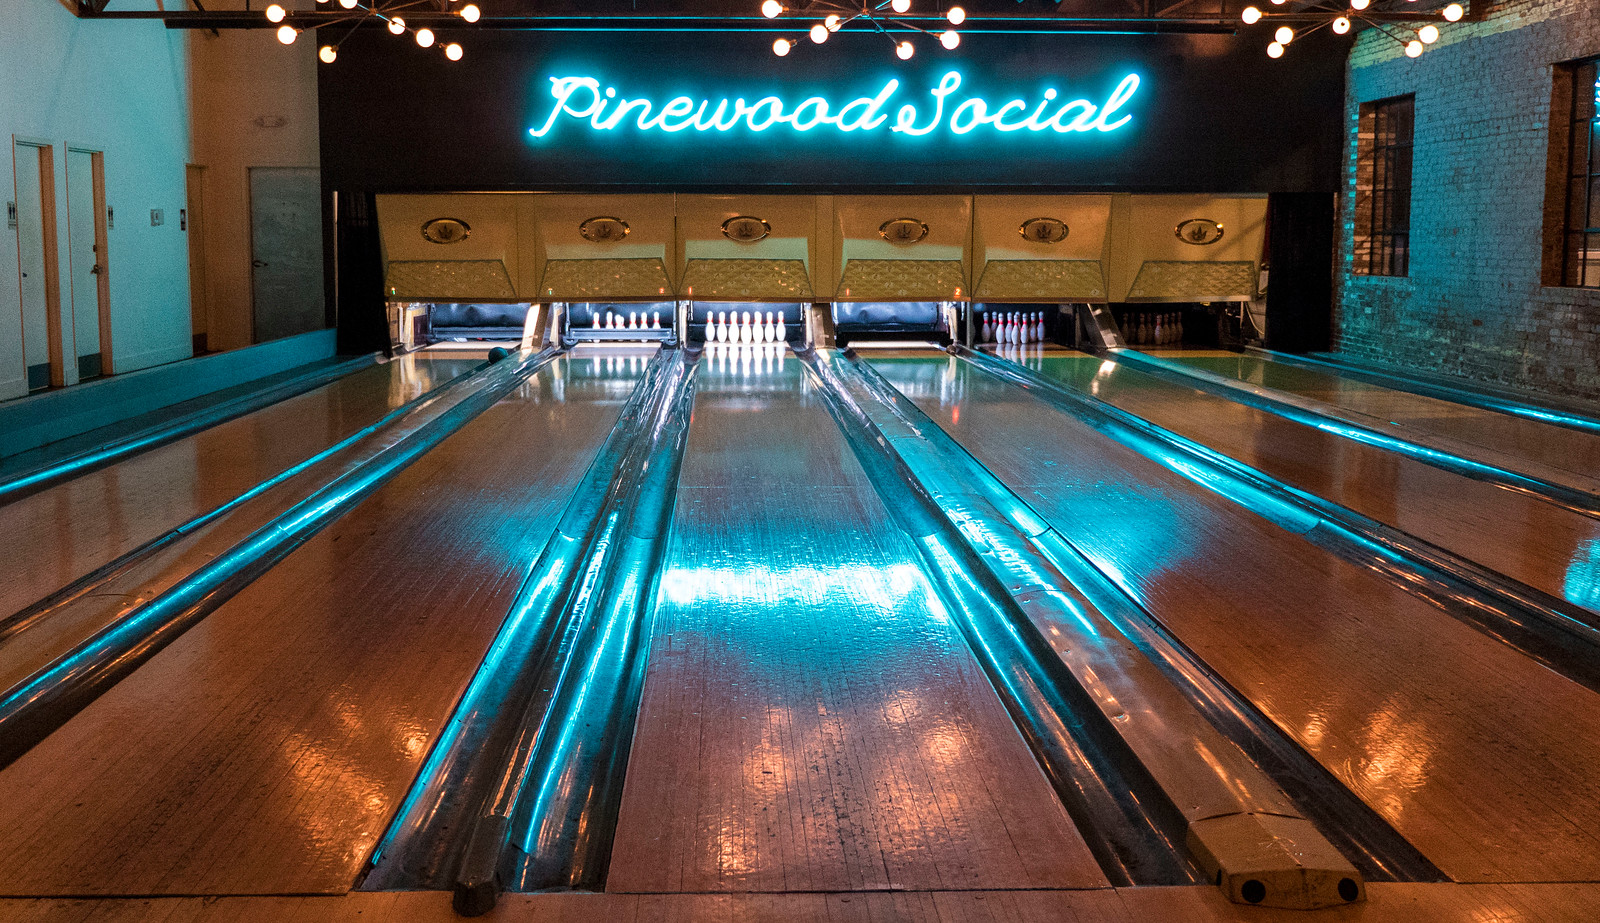 Pinewood Social bowling alley in Nashville TN